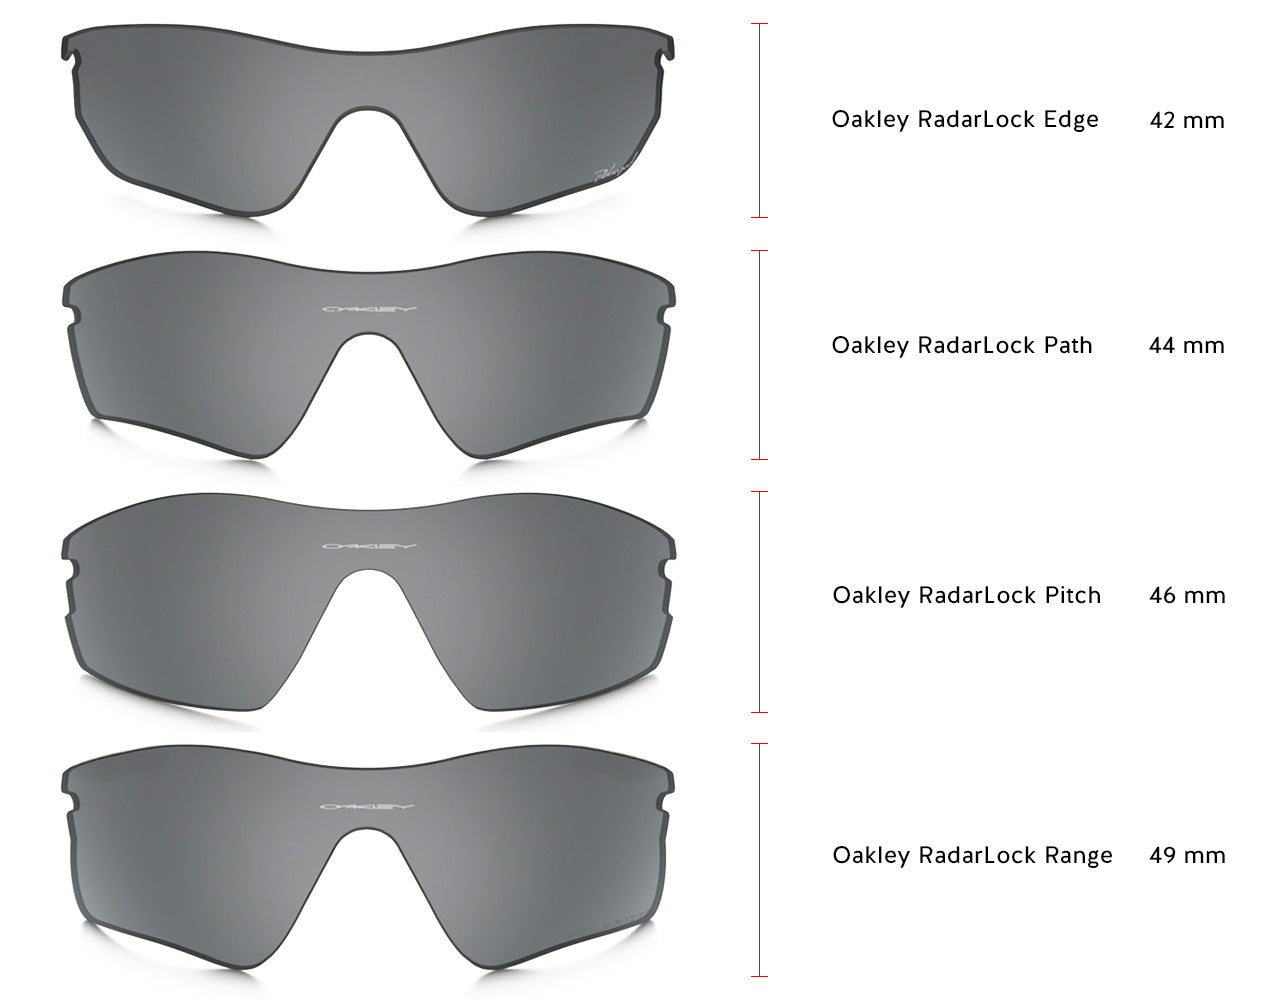 Oakley RadarLock Height Specs